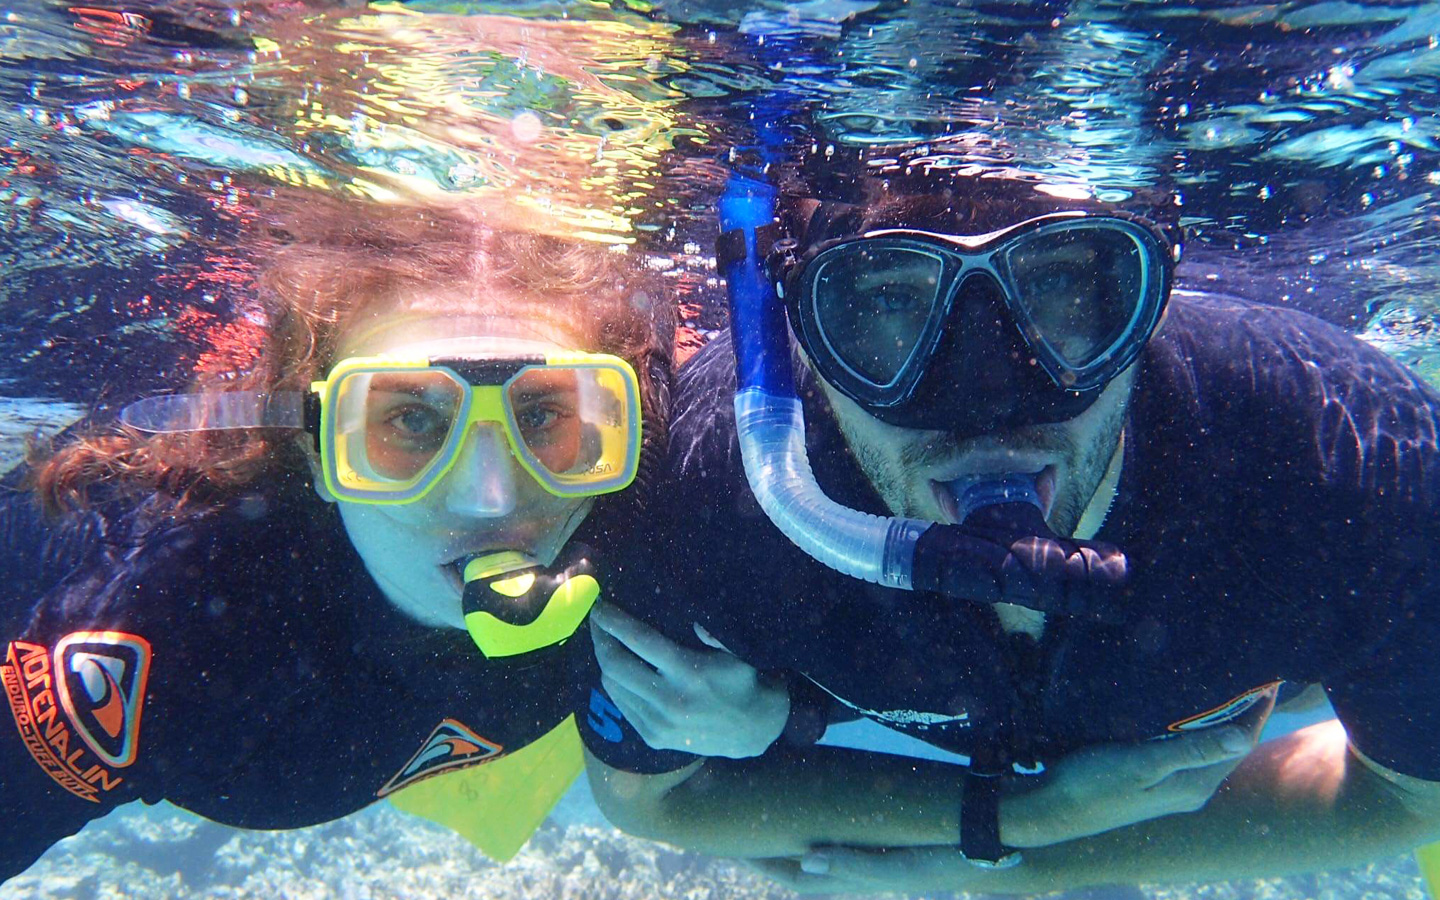 melissa carne and sam gill snorkelling in the great barrier reef in australia